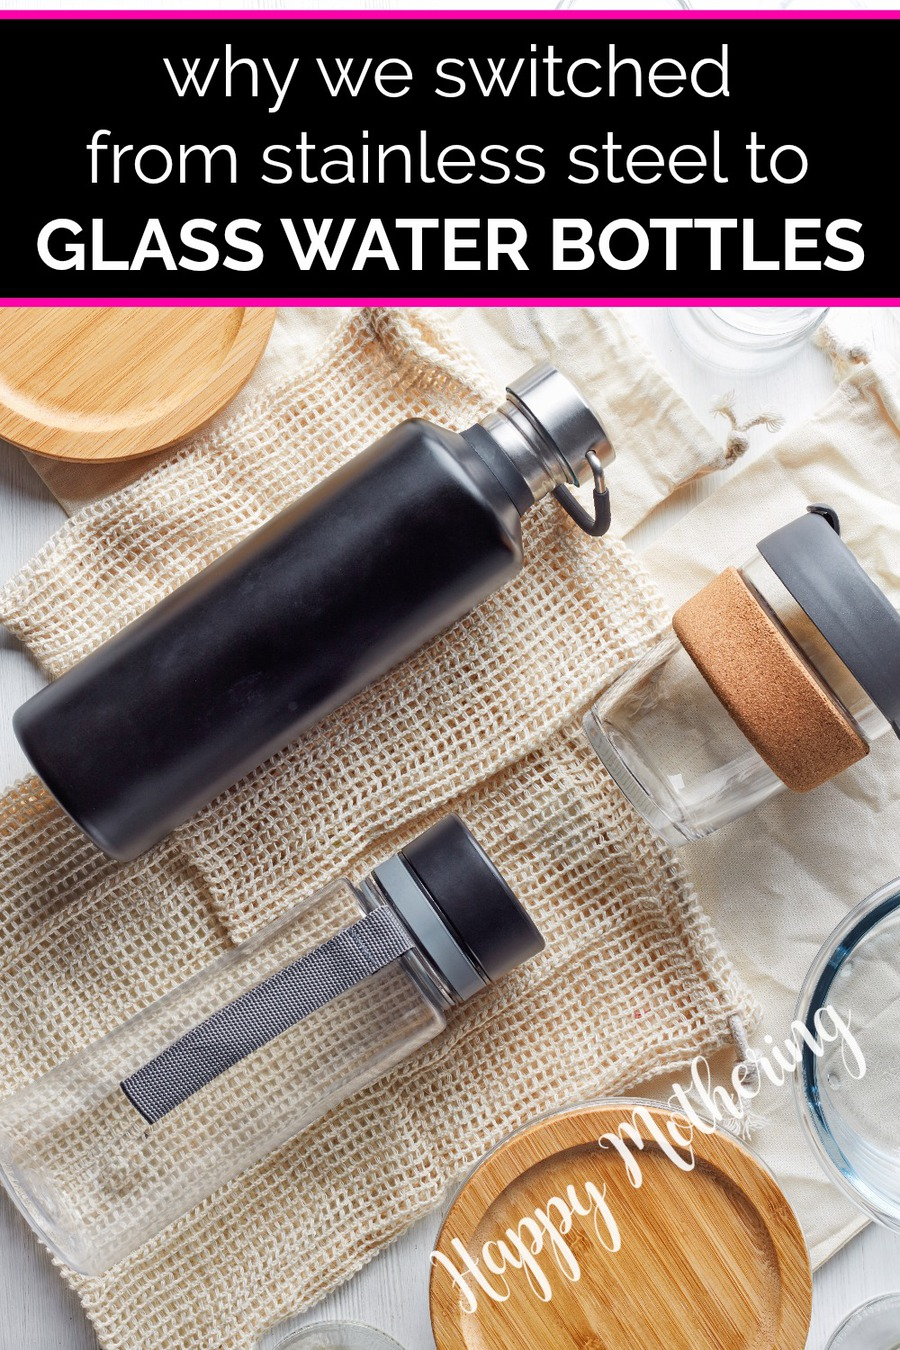 Glass and stainless steel water bottles with other eco-friendly lifestyle items.